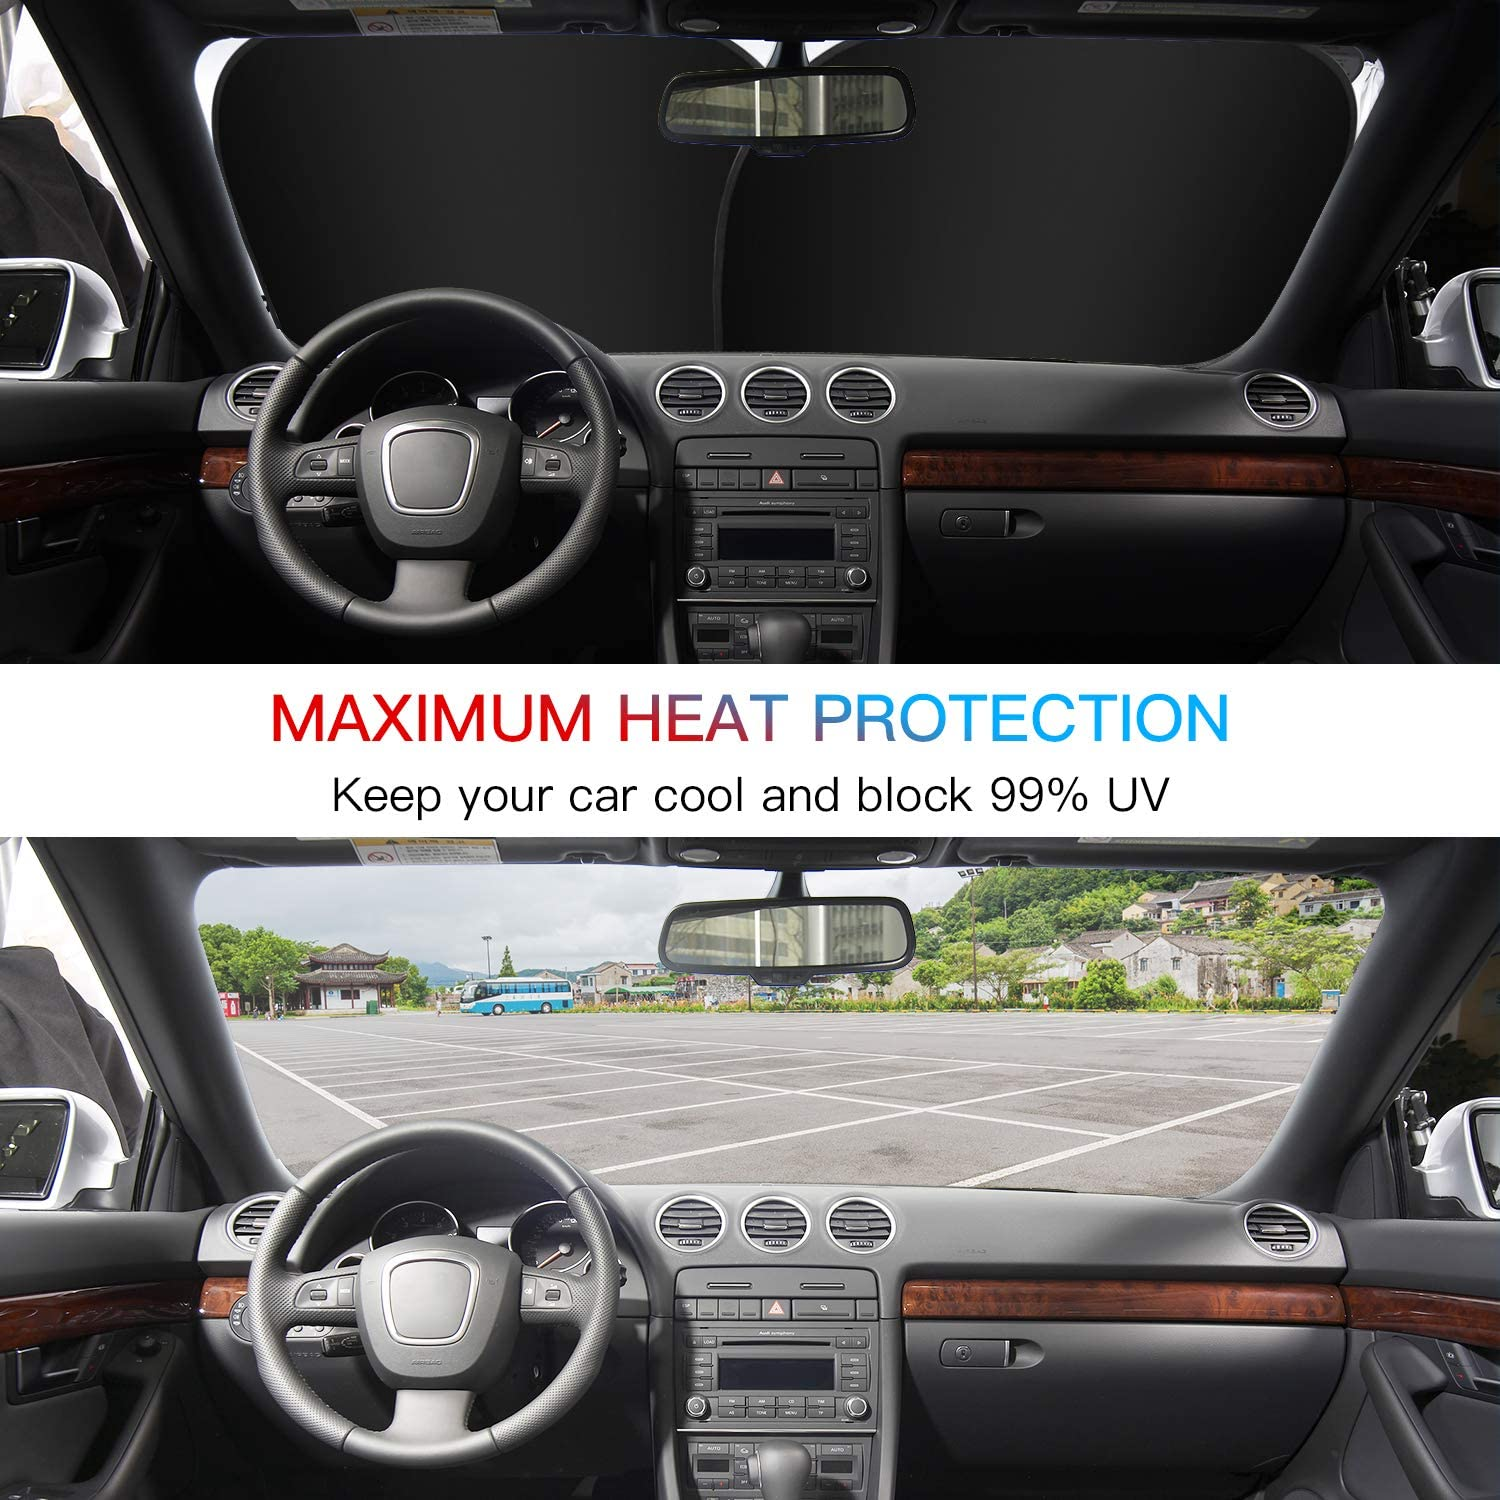 Kribin 2 Pack Windshield Sunshade Keep Your Vehicle Cool 2020 Upgraded Car Windshield Sun Shade for UV Protection and Heat Reflector